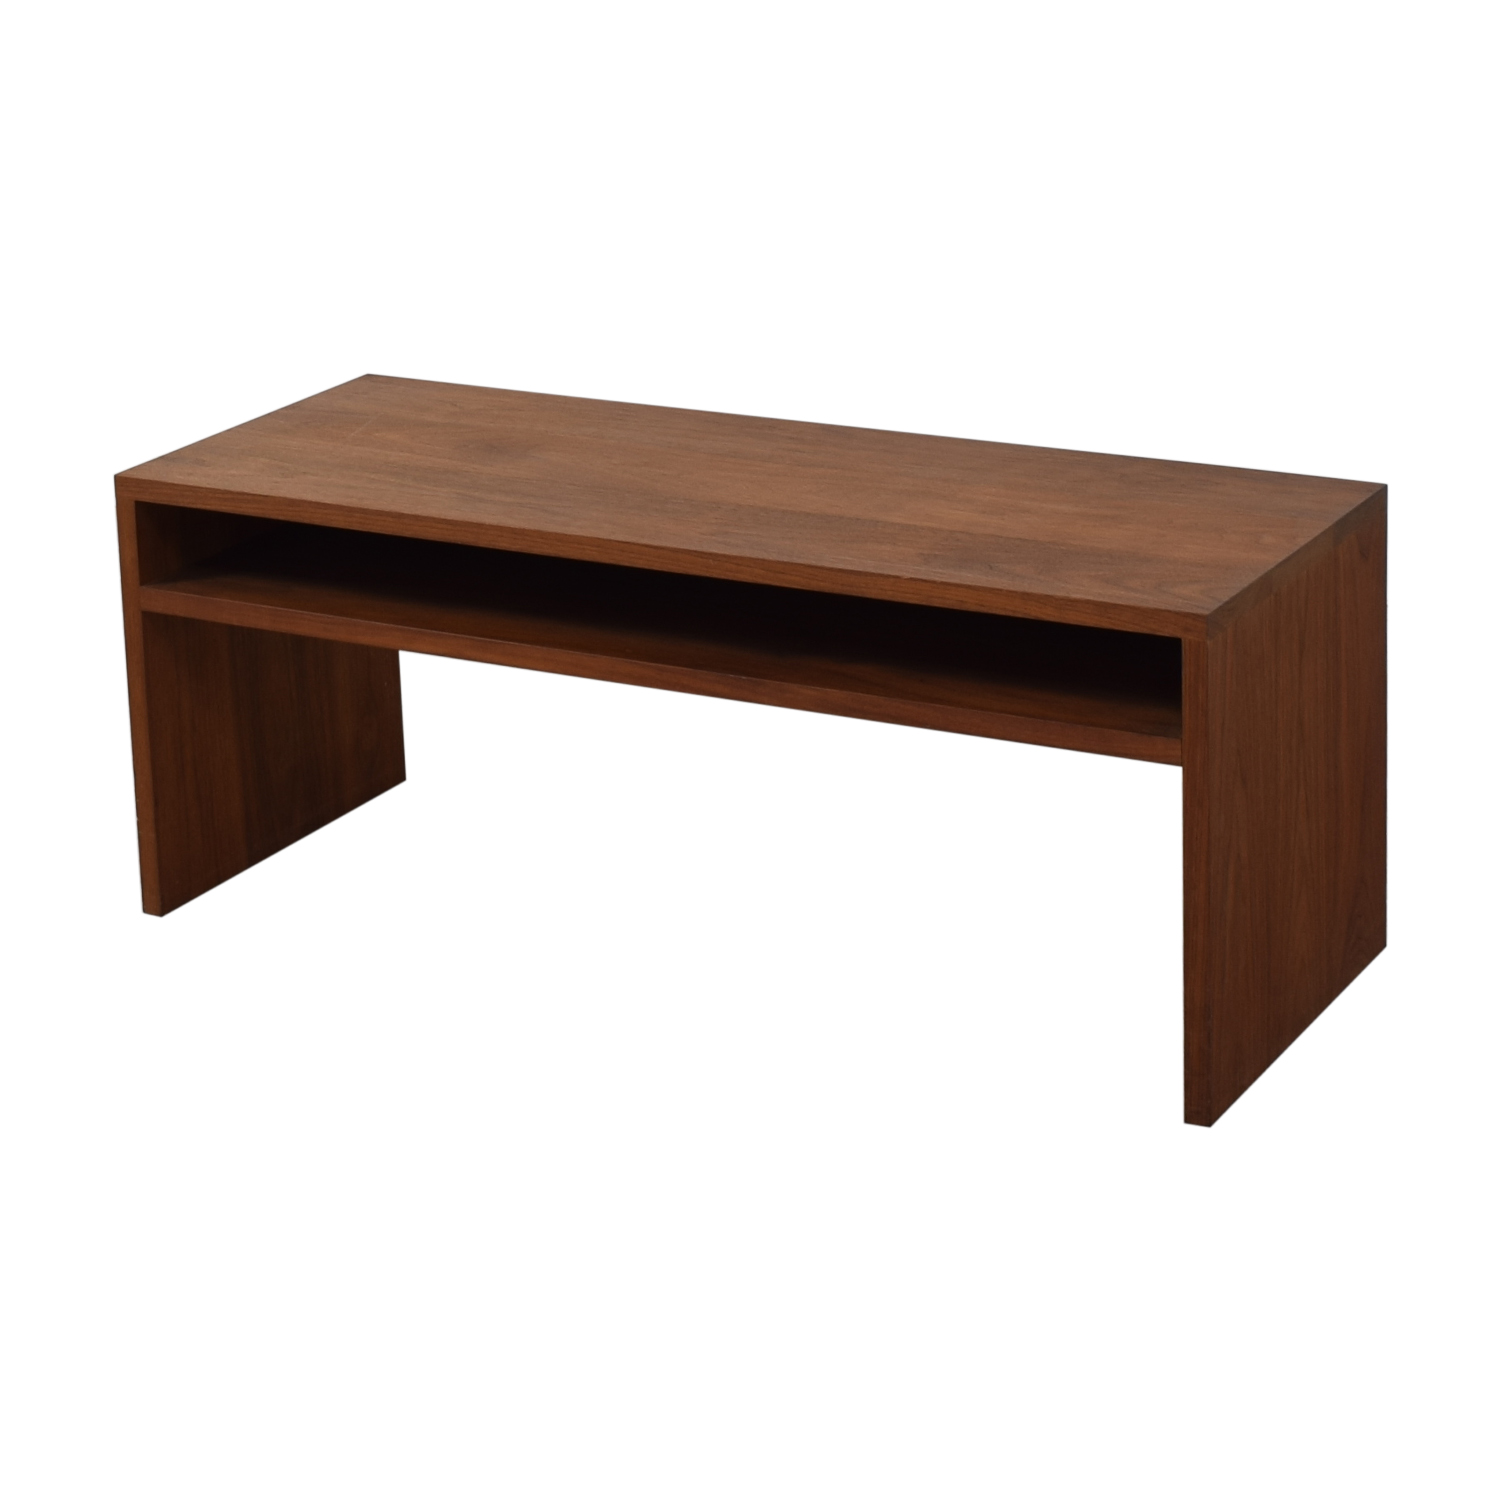 Custom Solid Walnut Coffee Table with Enclosed Shelf Space brown